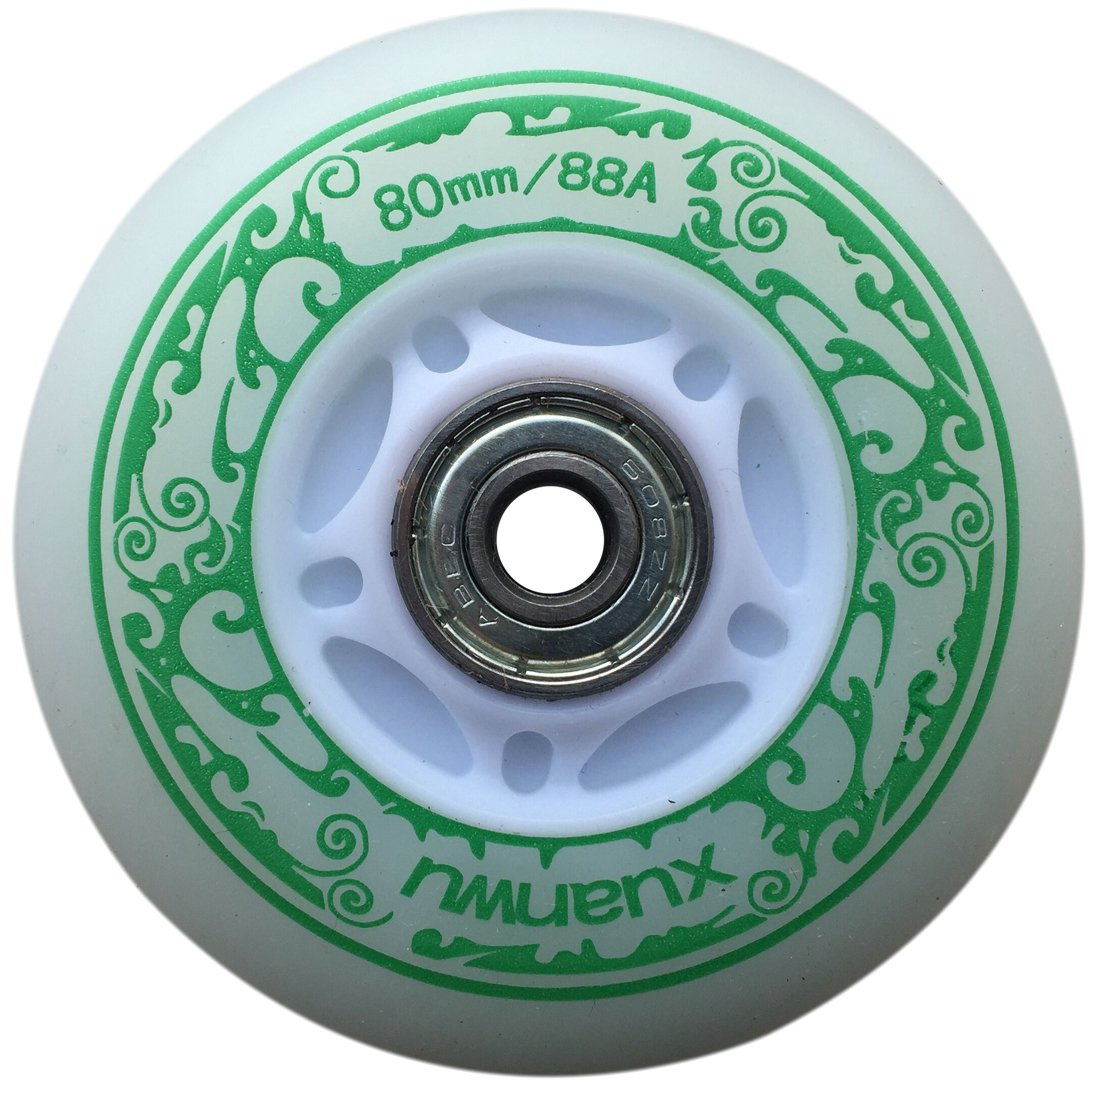 Light Up Led Inline Skates Pu Wheels Outdoor And Indoor Rollerblades Rubber Wheels Pack Of 4 Green-80mm by you-beat-you-land